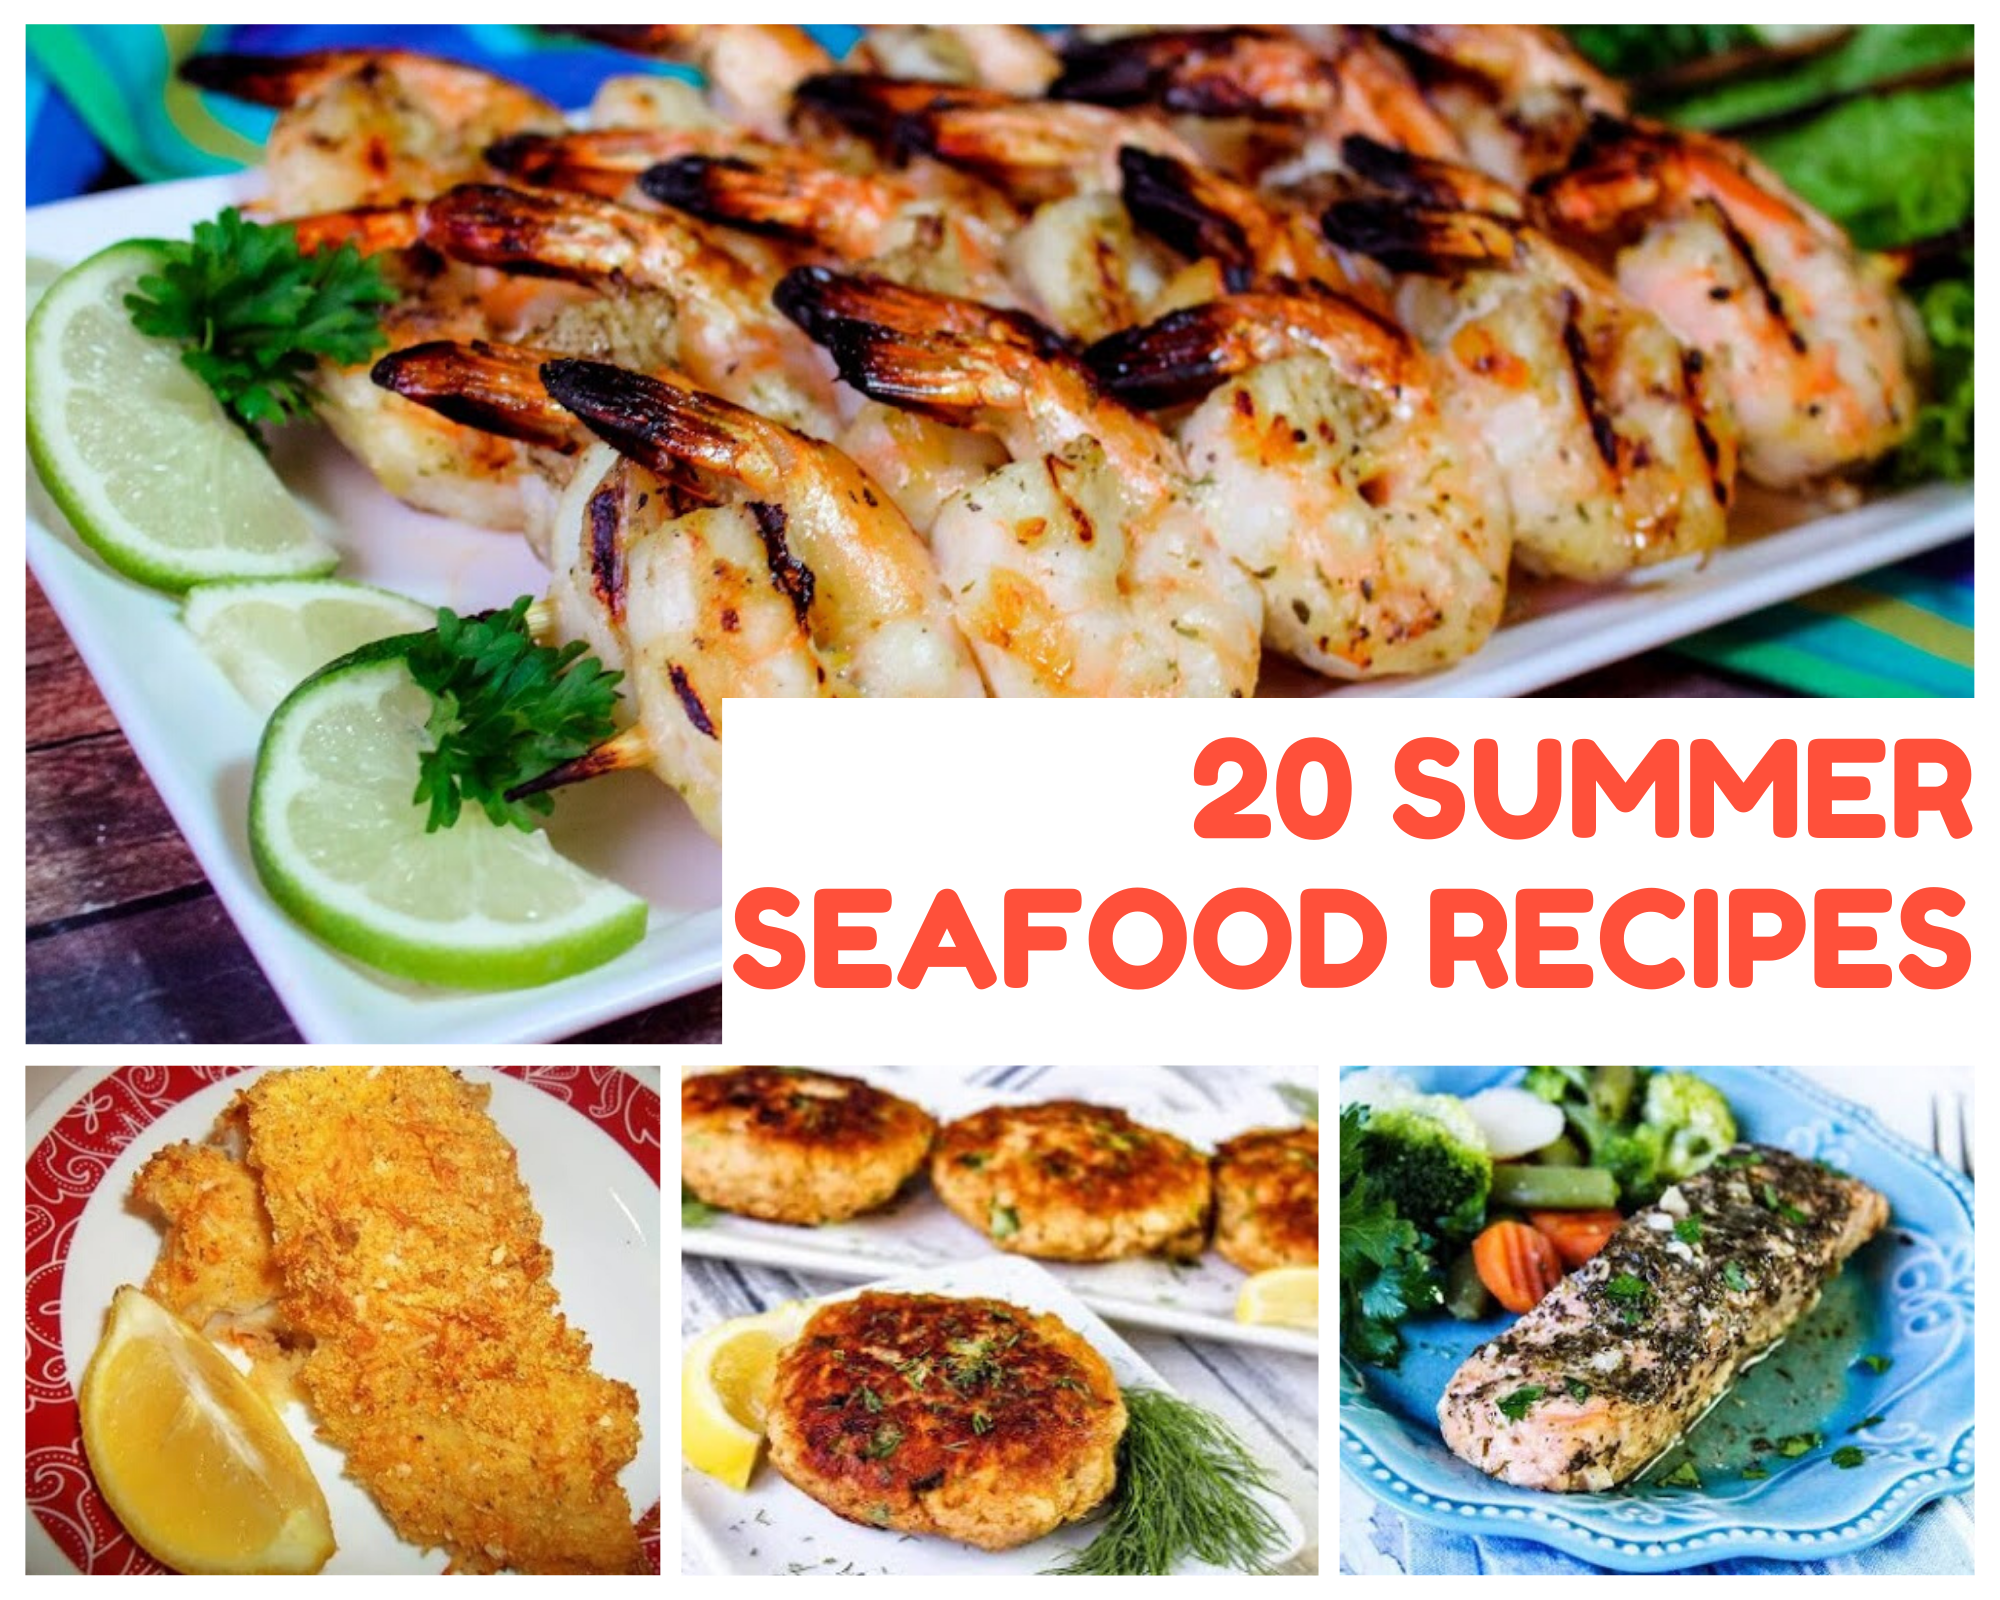 Grilled shrimp, baked cod, salmon patties and more summer seafood recipes